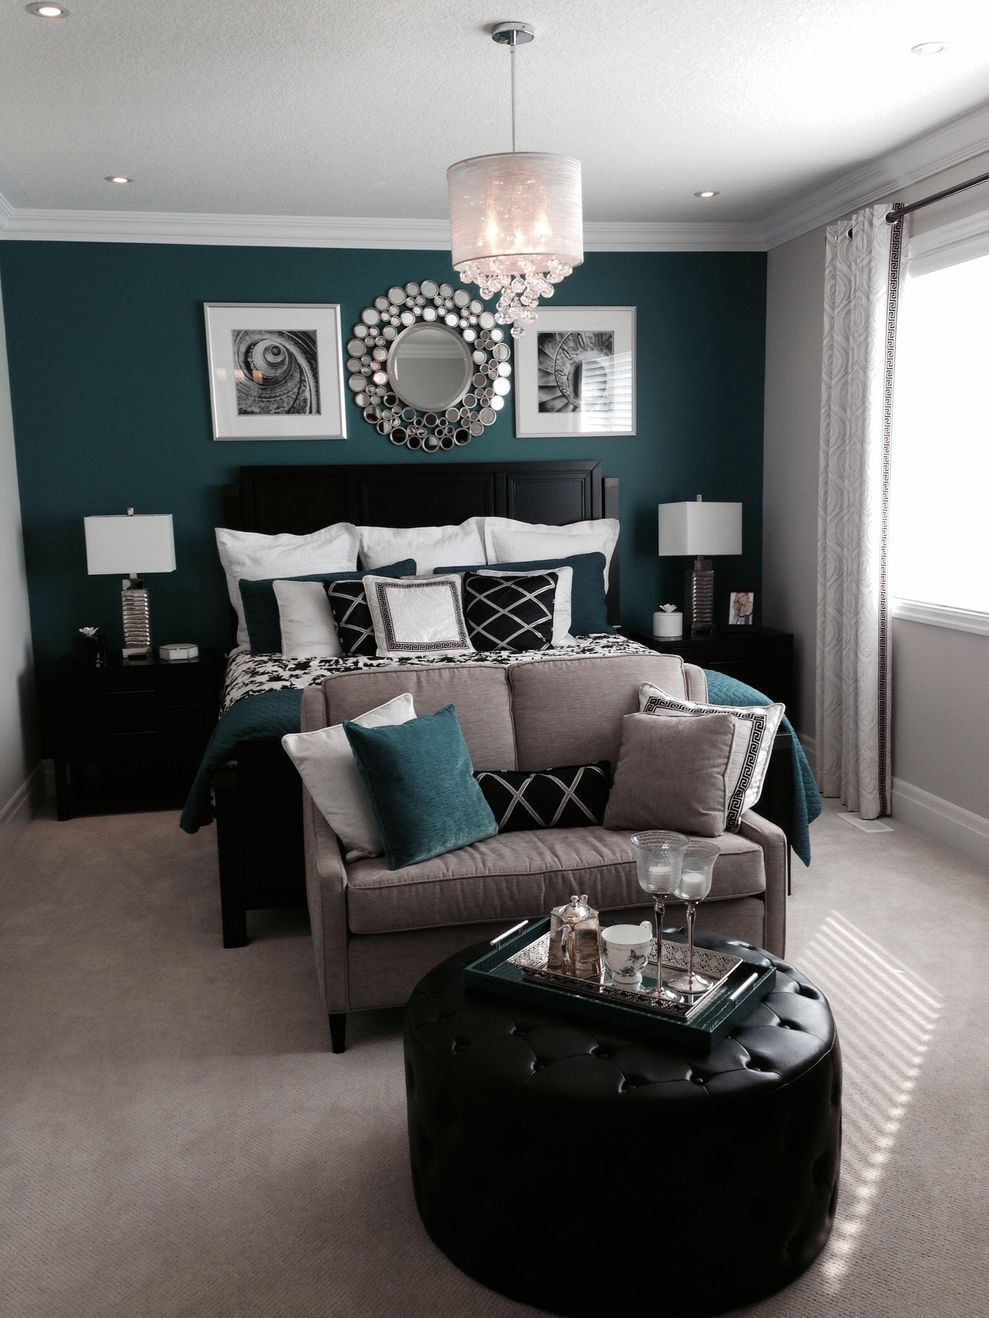 incredible living room wall color | 42 Incredible Teal And Silver Living Room Design Ideas ...